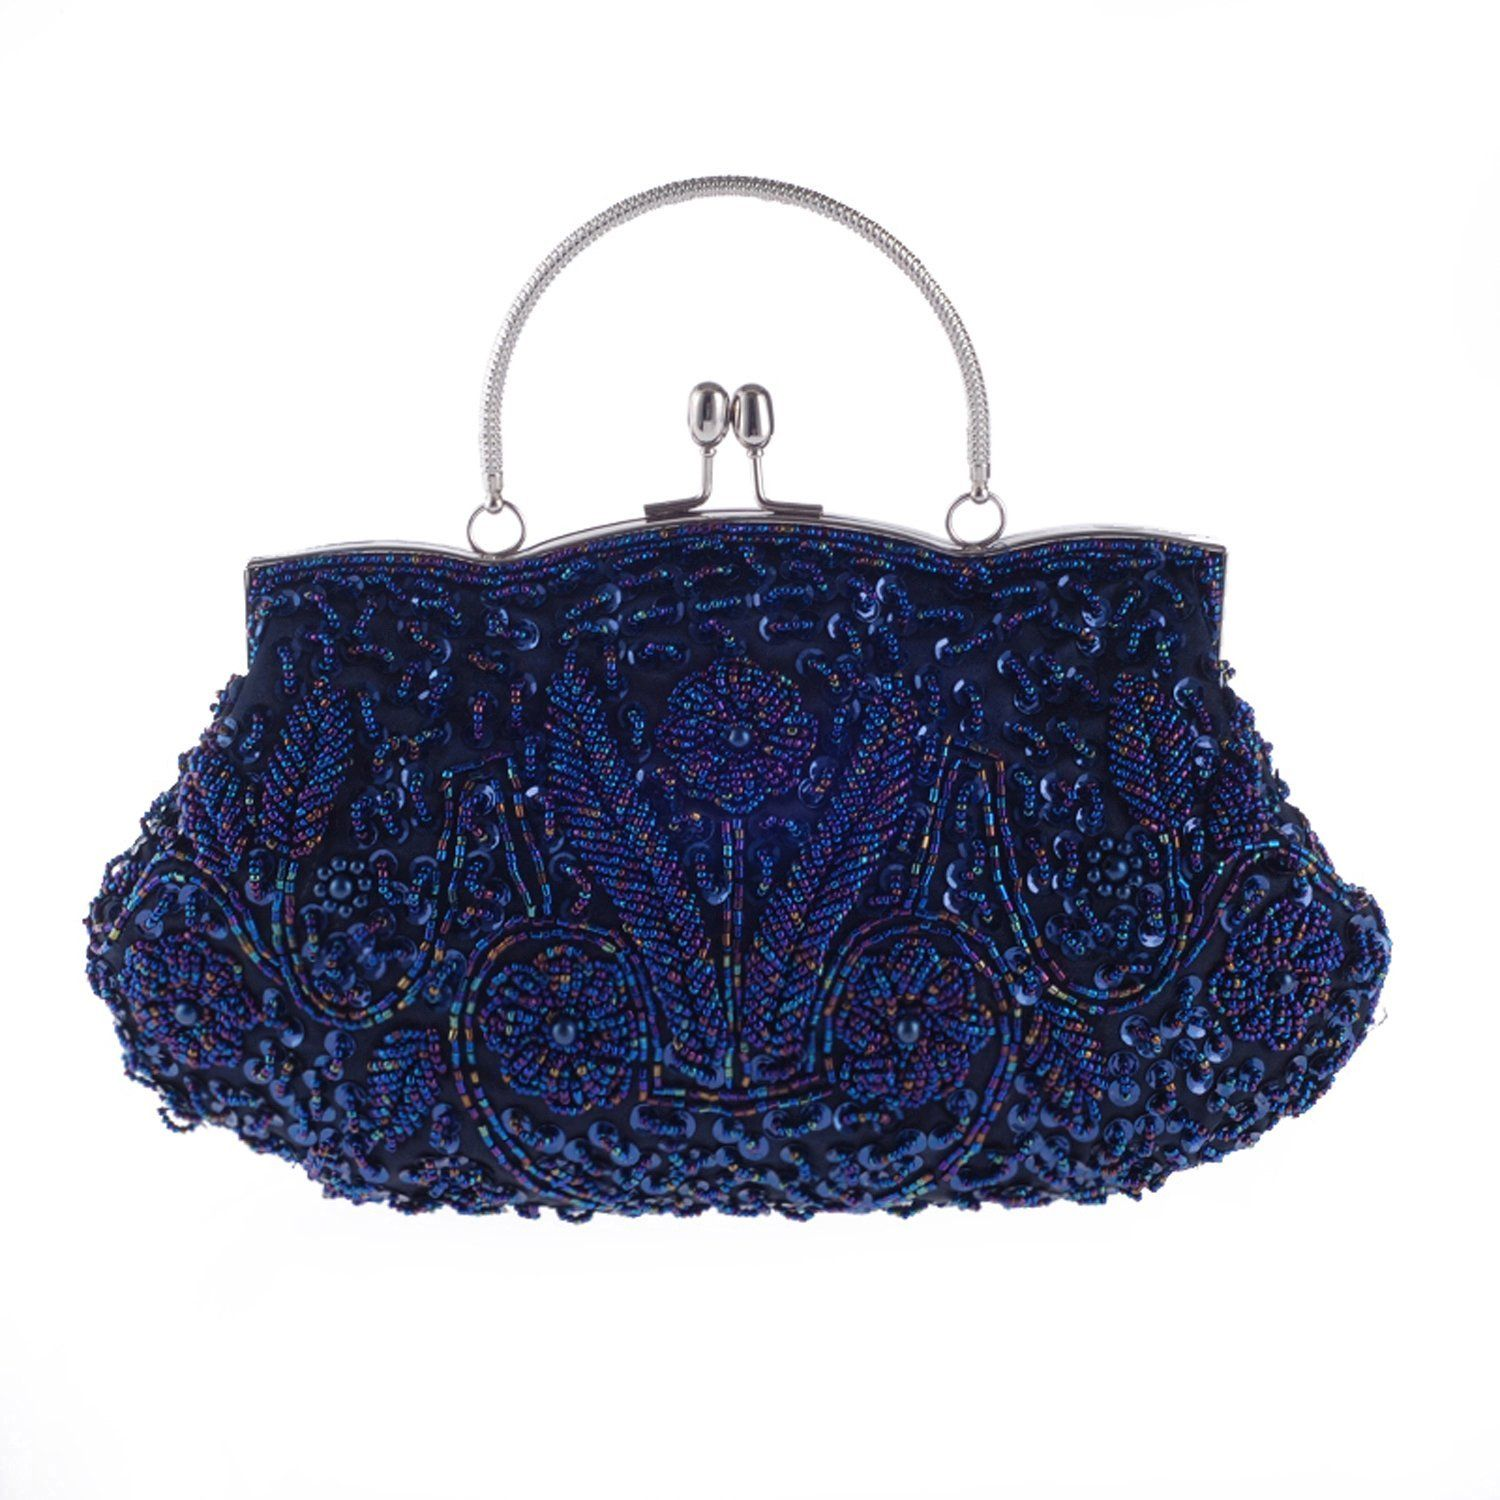 Chichitop Beaded Sequin Design Flower Evening Purse Large Clutch Bag Navy Blue Handbags